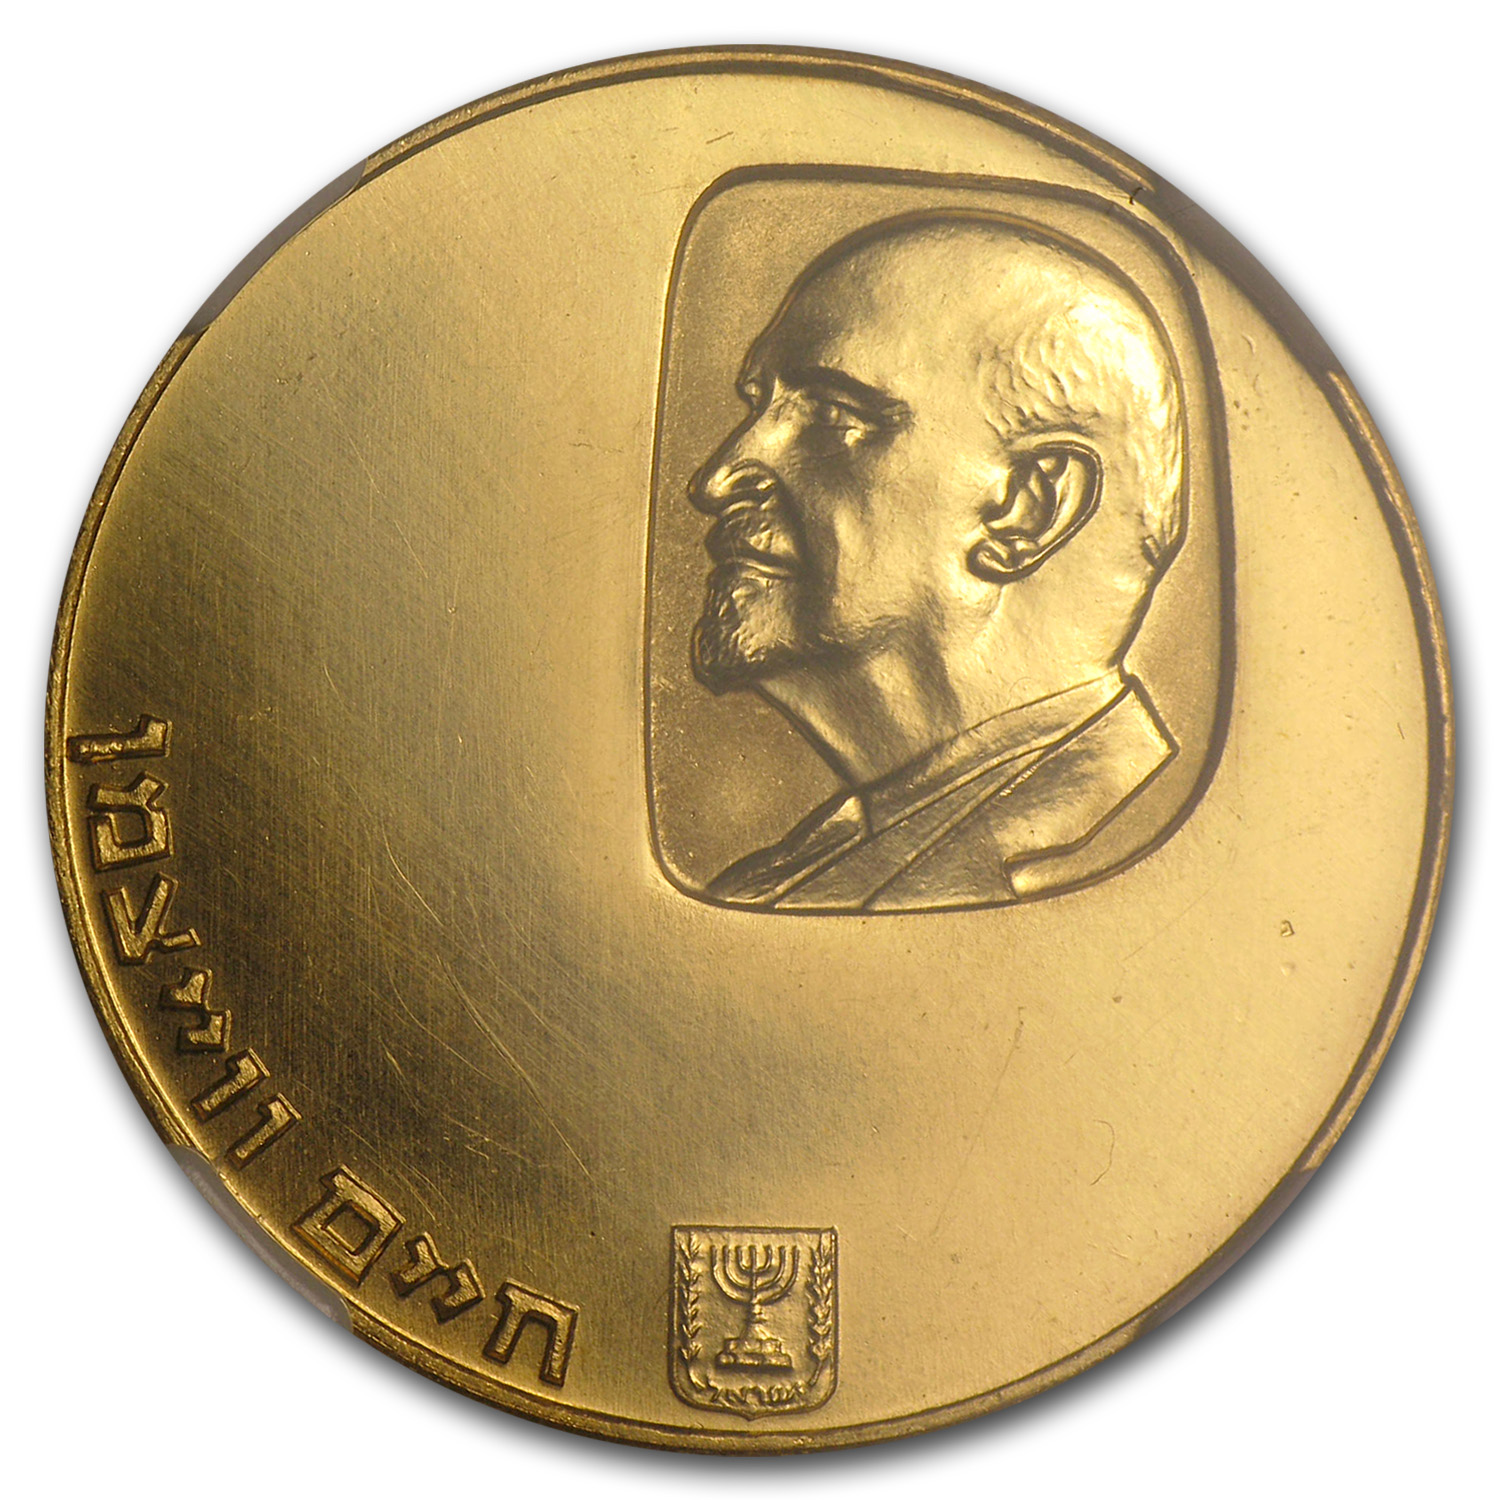 1962 Israel Chaim Weizmann Proof Gold 50 Lirot PF-64 NGC